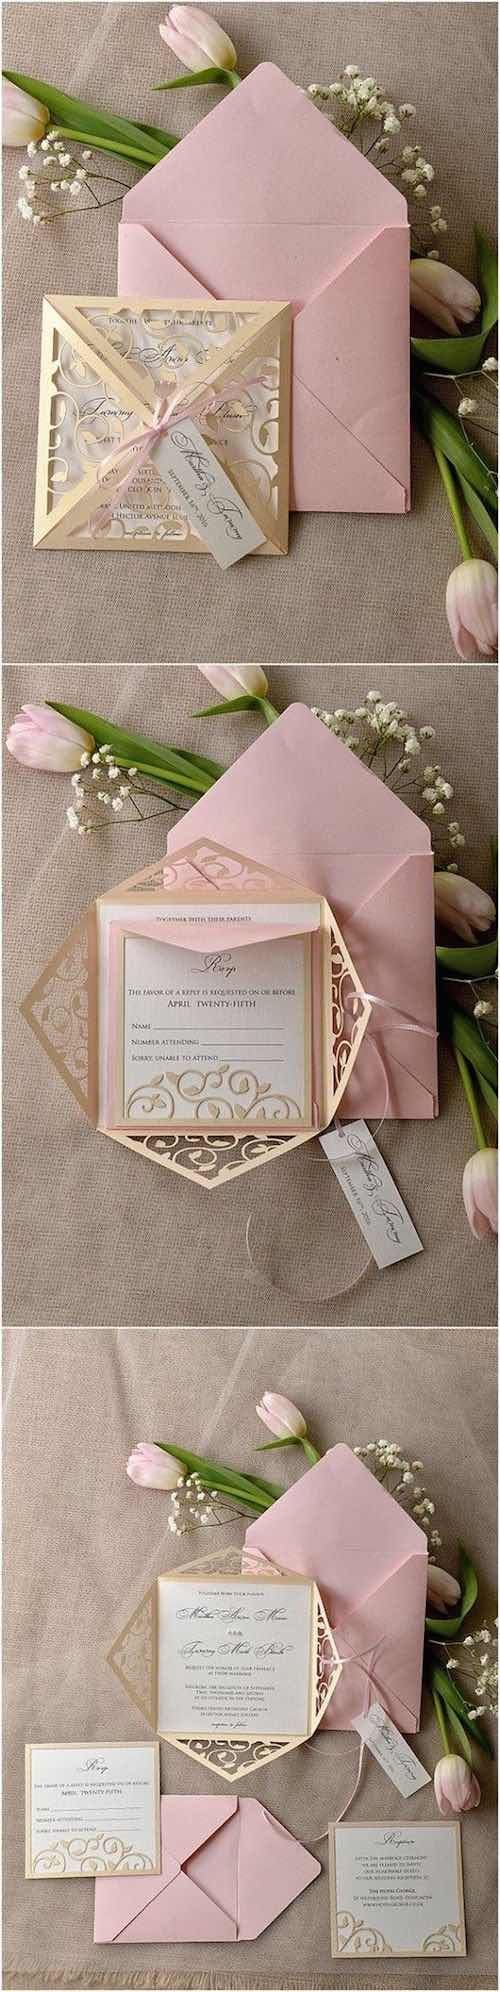 The fairytale wedding ideas to plan your disney themed wedding the fairytale wedding ideas to plan your disney themed wedding laser cut wedding invitations fairytale weddings and pastel pink solutioingenieria Image collections